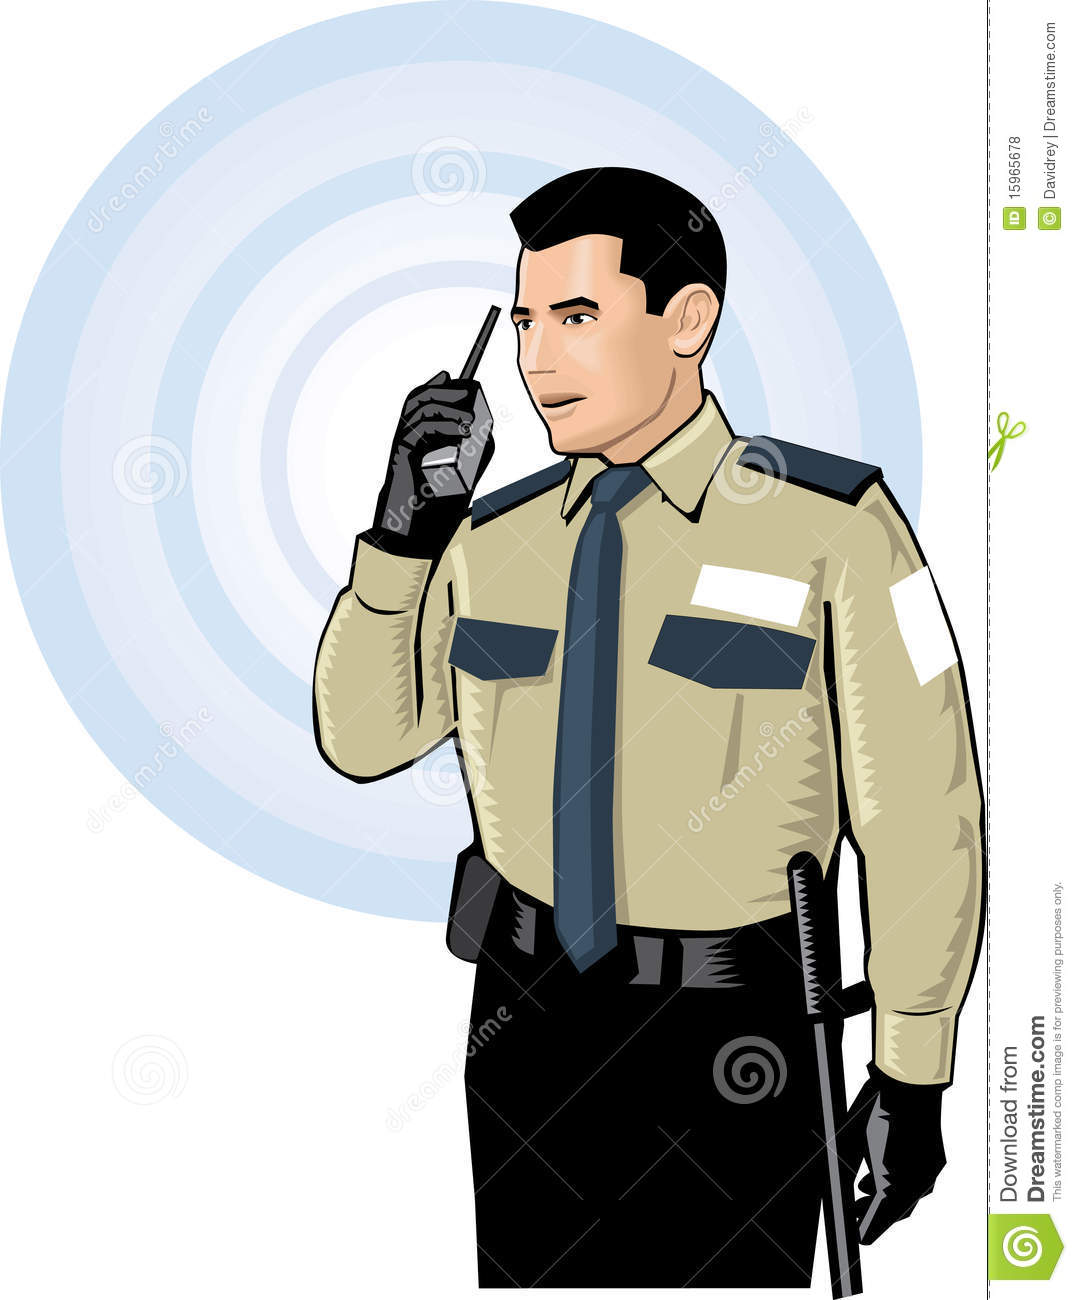 https://thumbs.dreamstime.com/z/security-guard-communicating-15965678.jpg